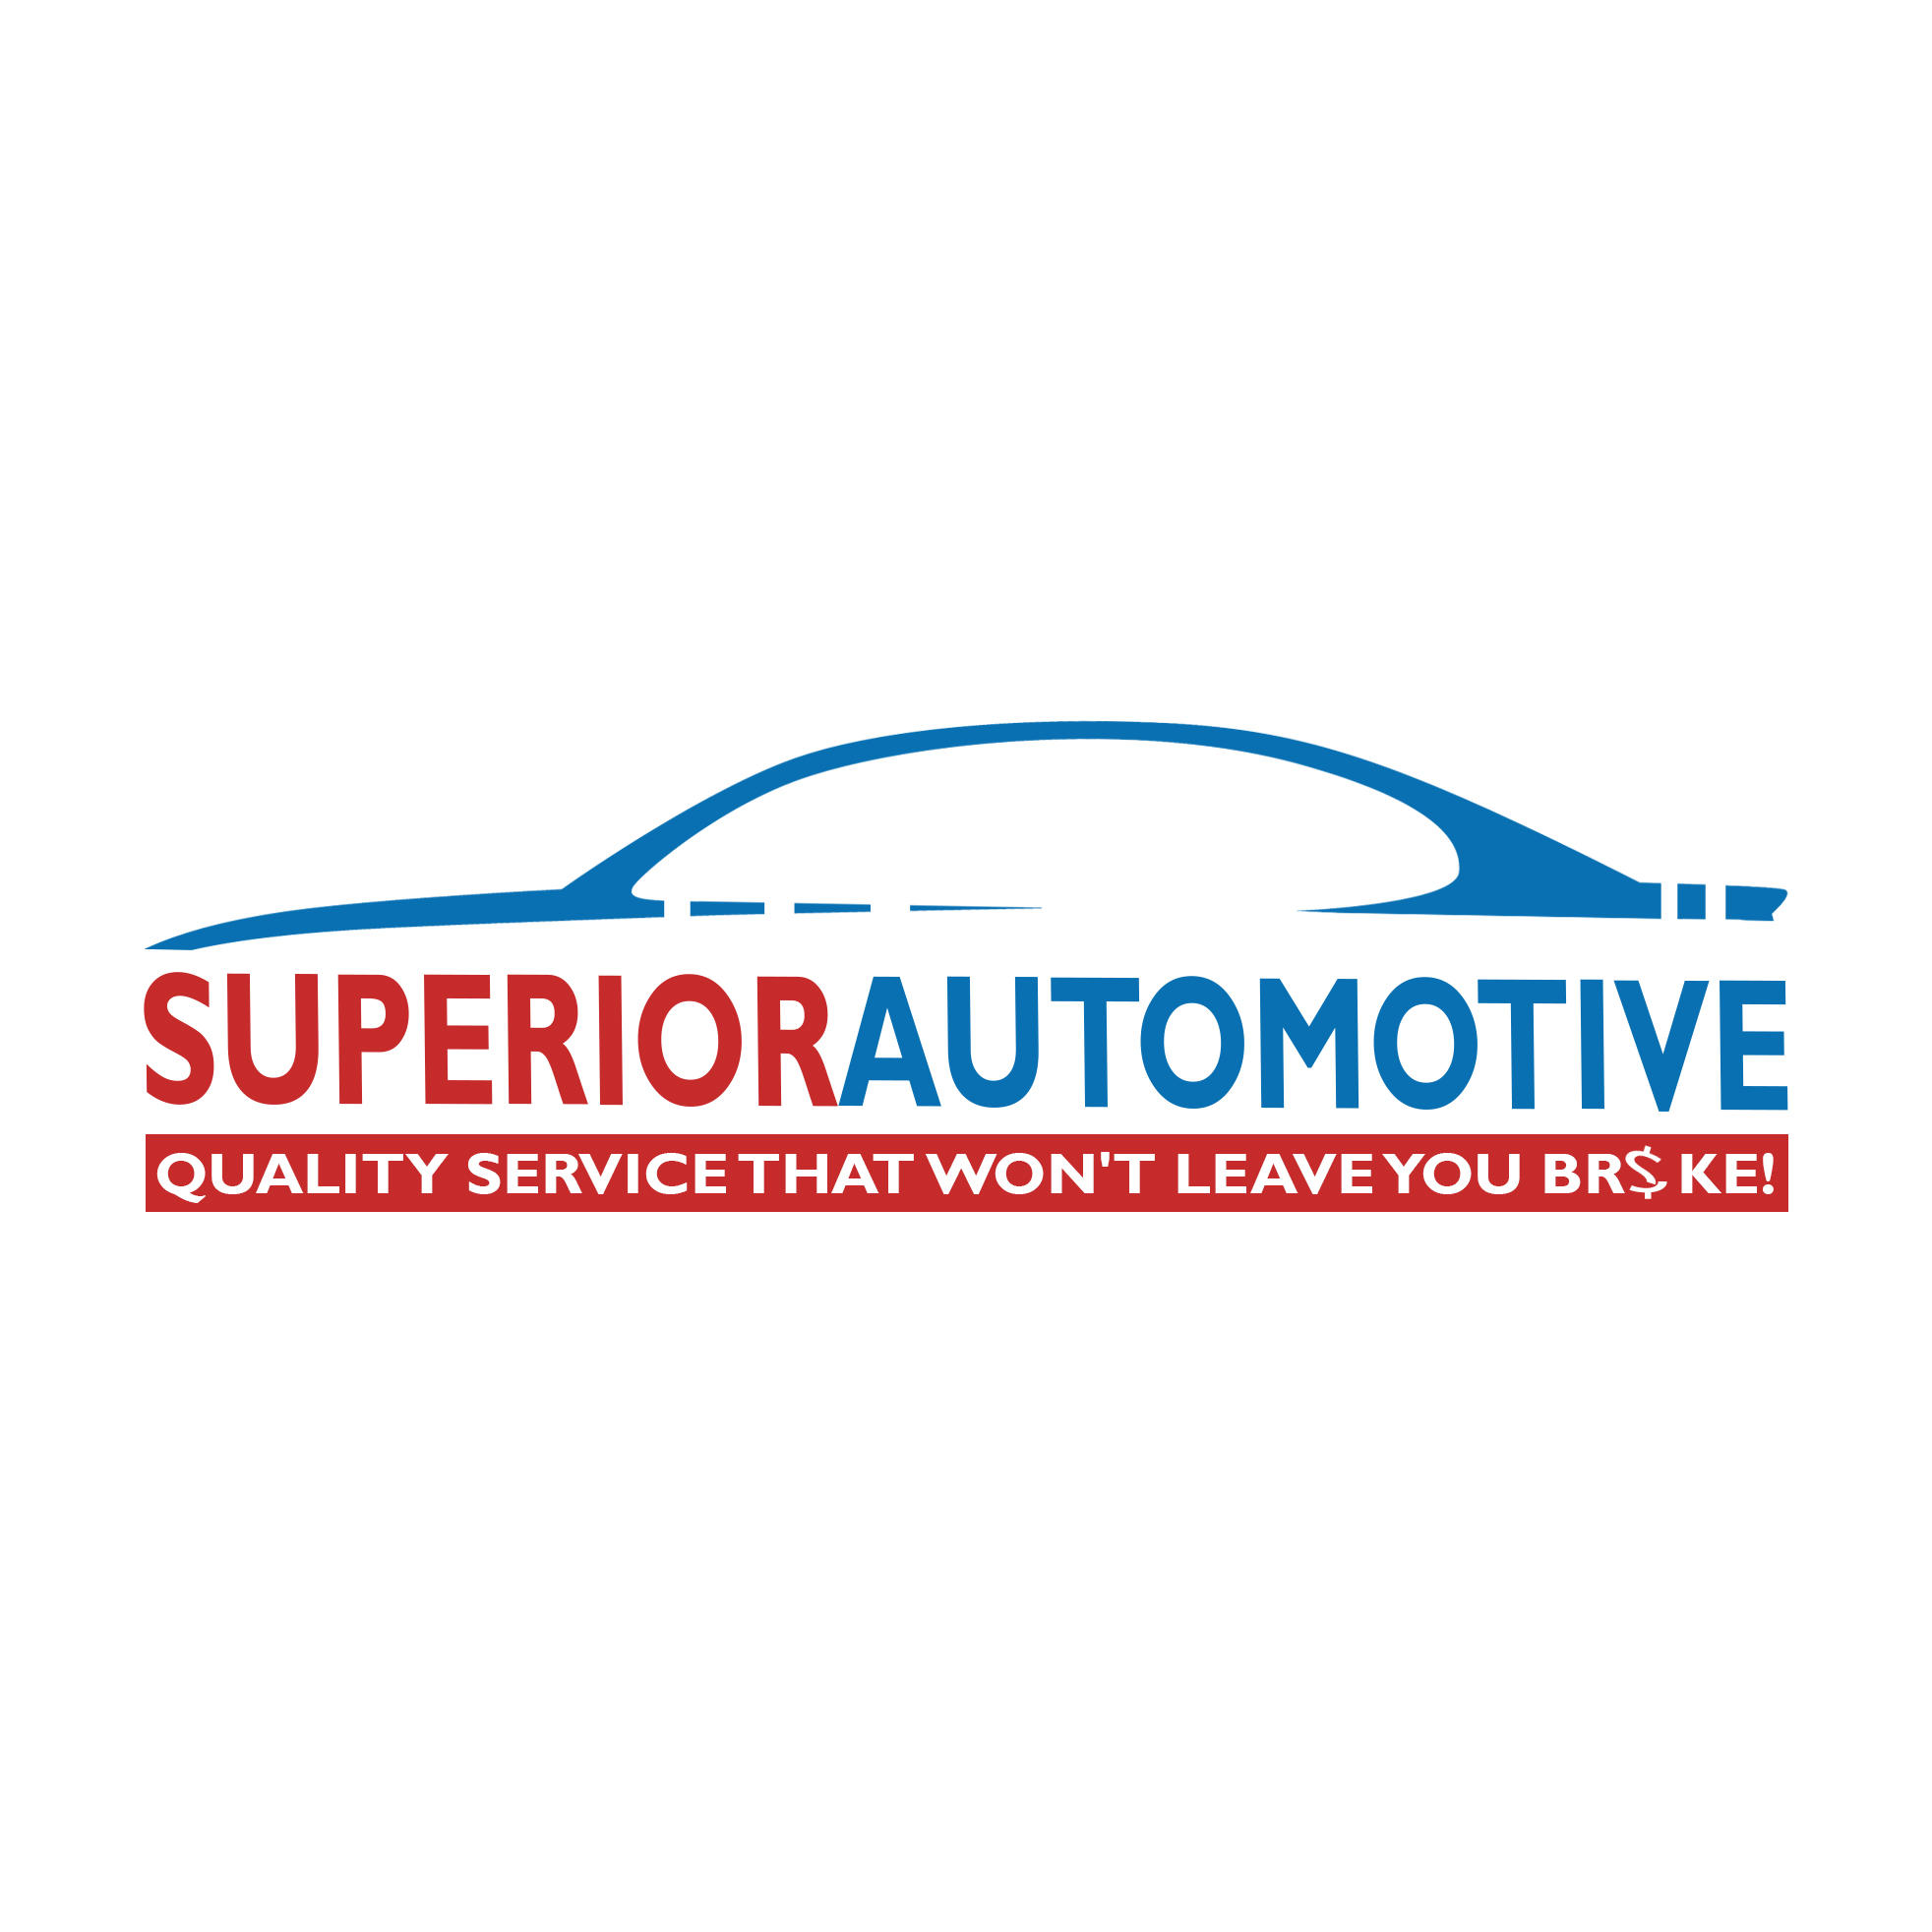 Superior Automotive image 1